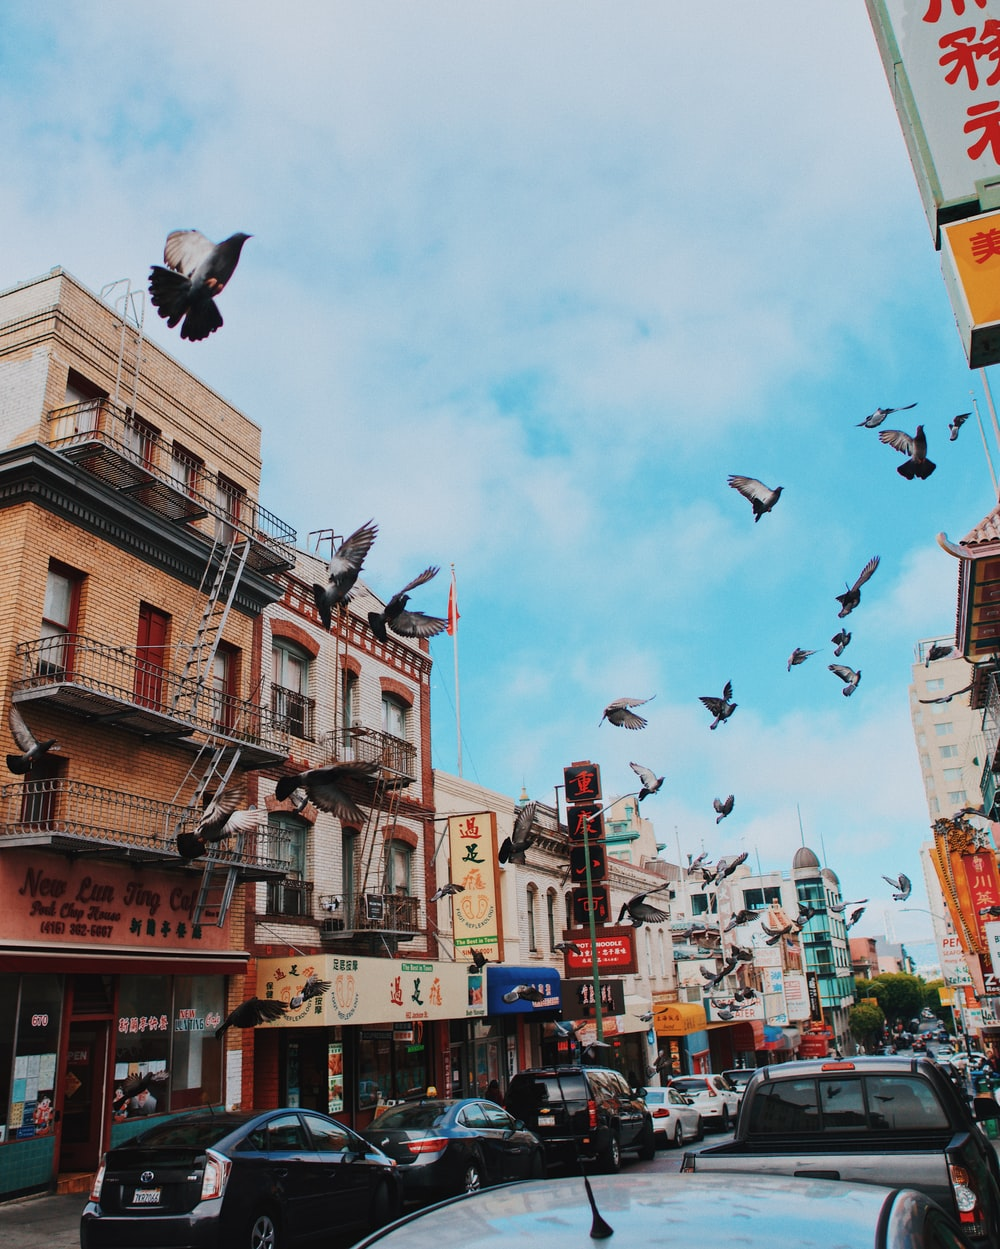 flock of birds flying over the buildings during daytime